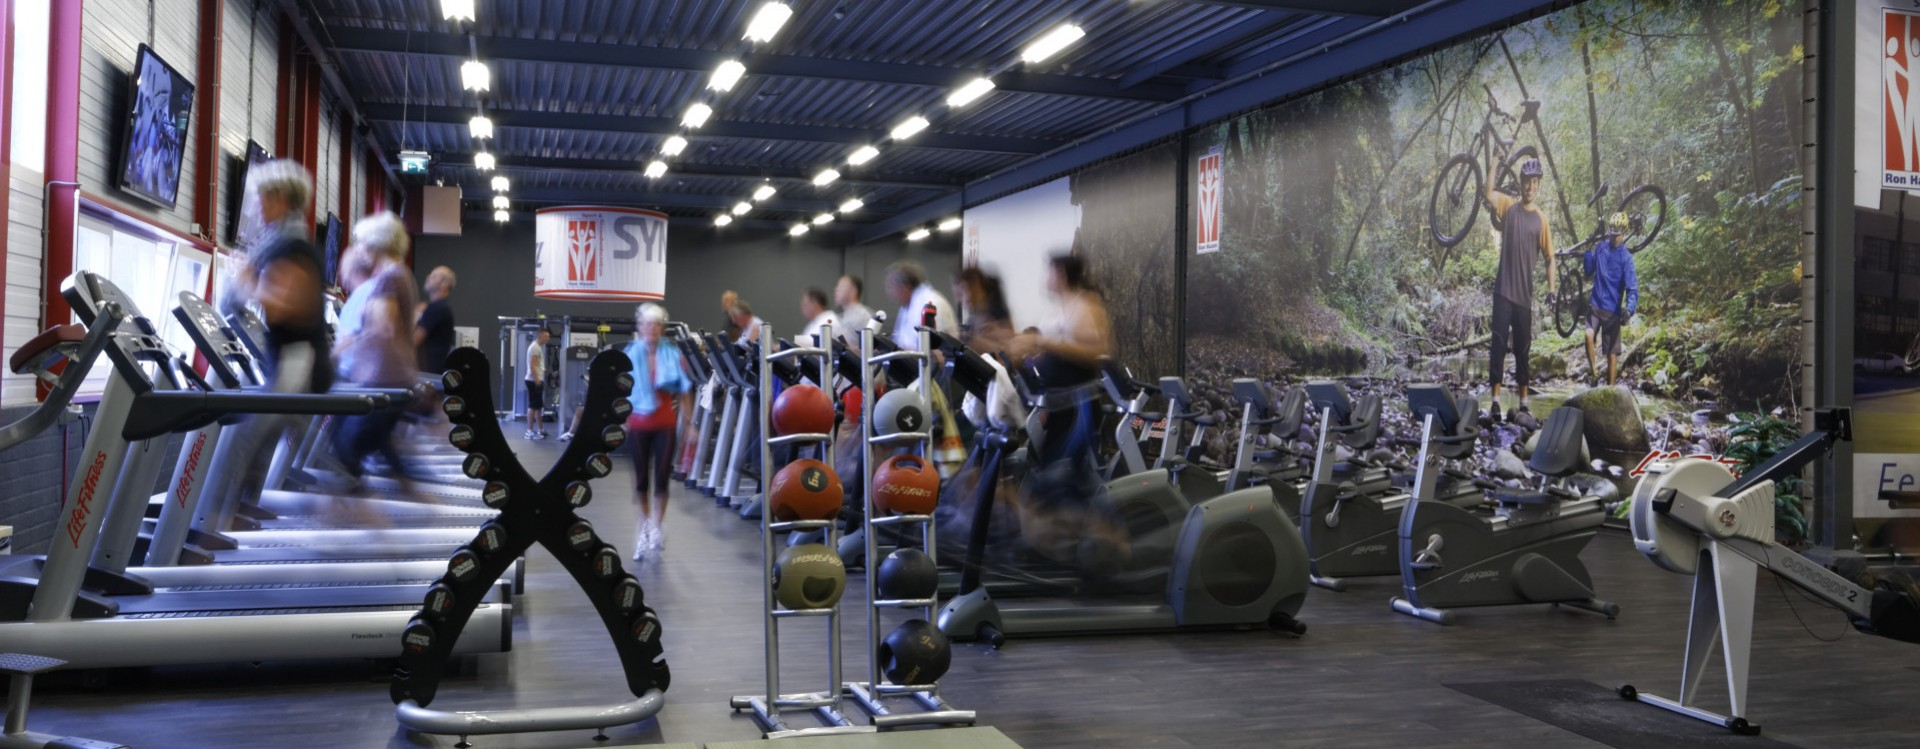 Fitness centrum Ron Haans Veendam